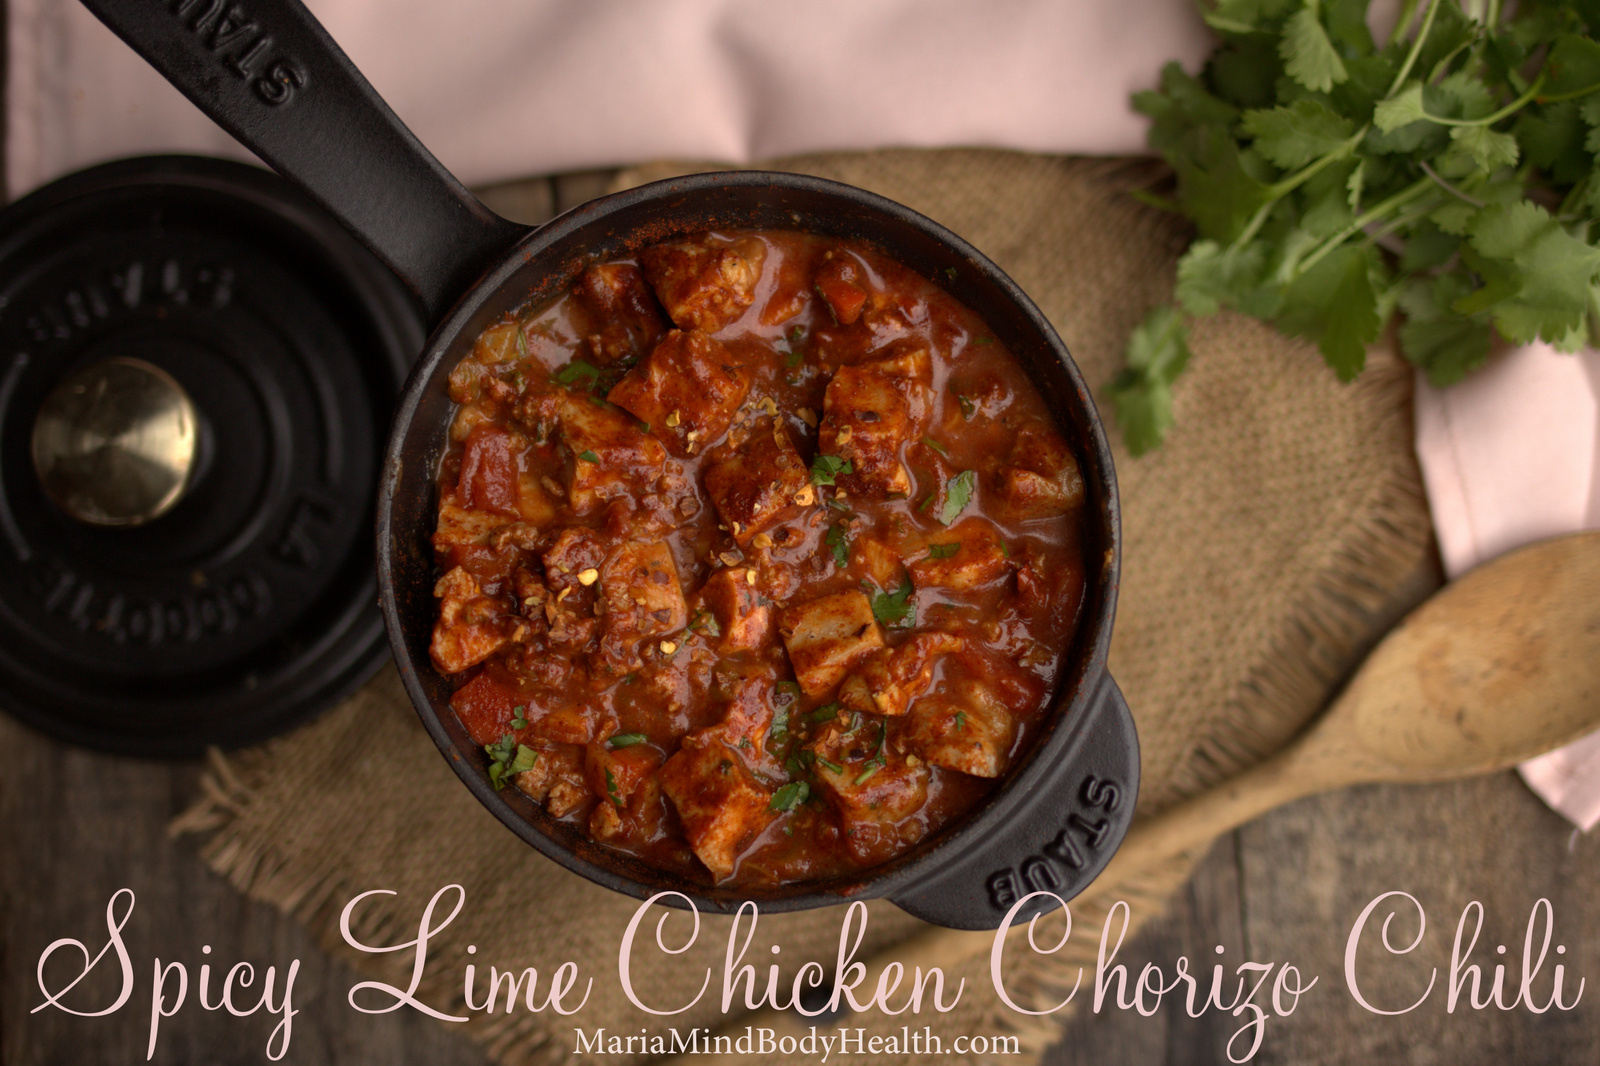 Spicy Lime Chicken Chorizo Chili